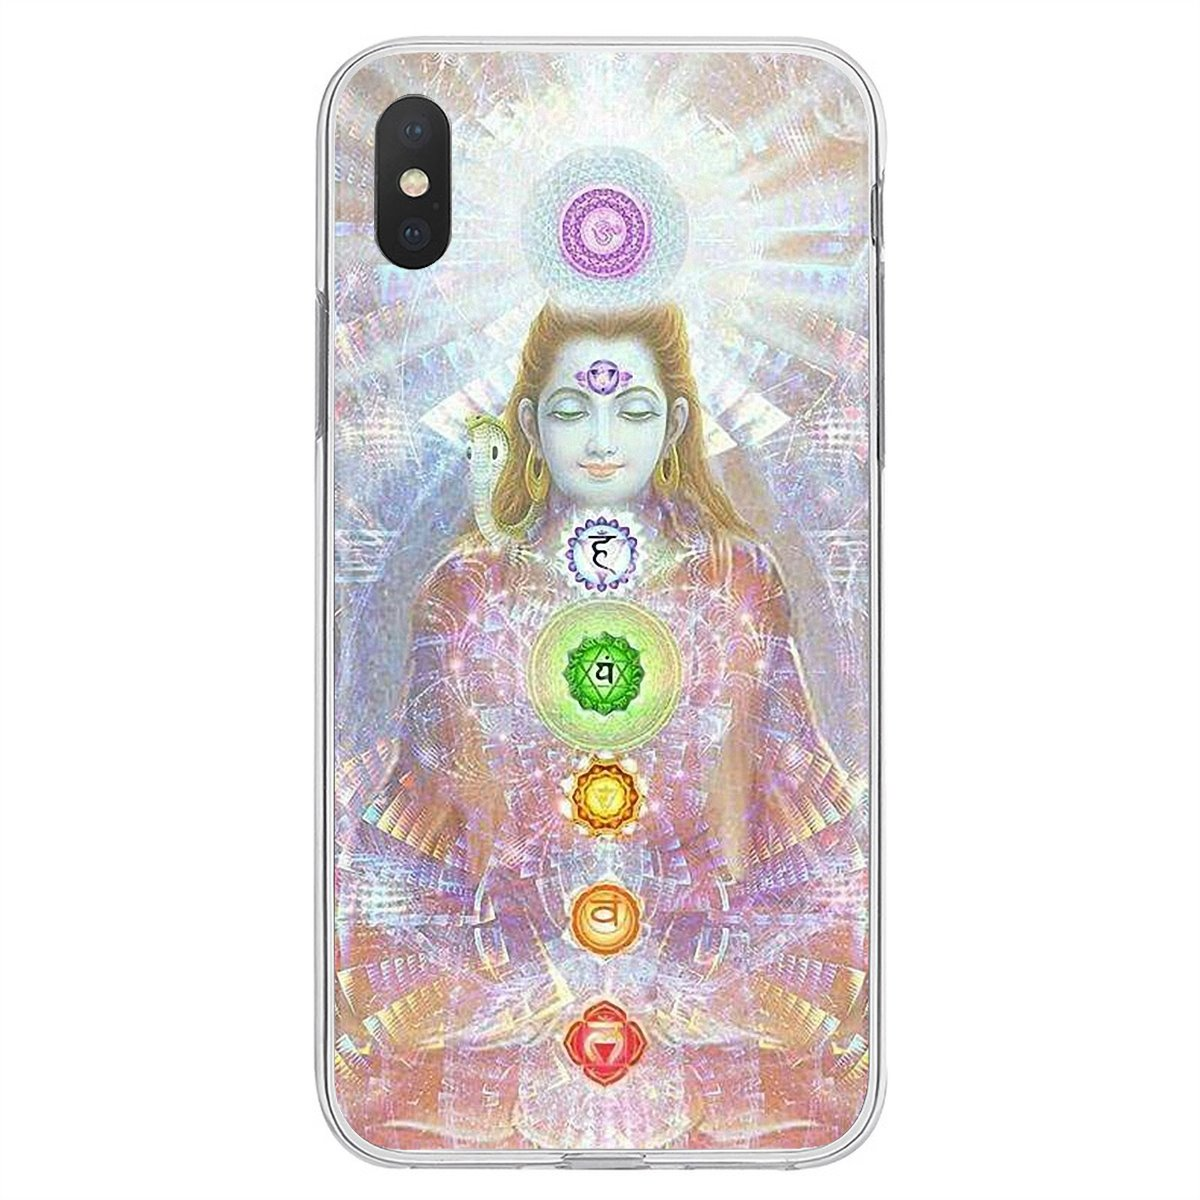 Soft Silicone Case India Hindu God Shiva Riding Nandi For Samsung Galaxy A10 A30 A40 A50 A60 A70 S6 Active Note 10 Plus Edge M30 Fitted Cases Aliexpress